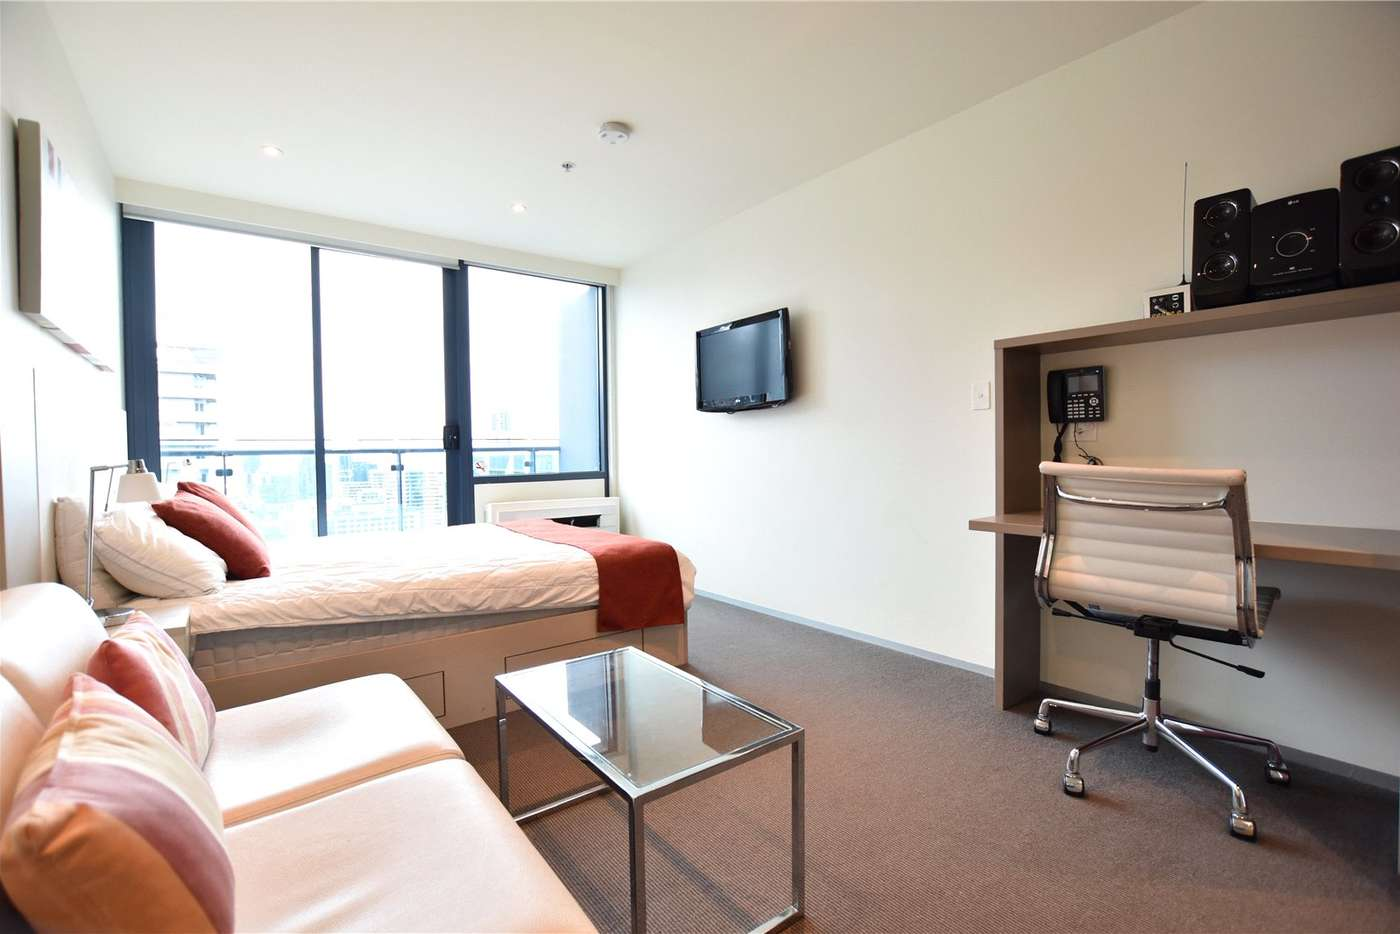 Main view of Homely studio listing, 2711/181 ABeckett Street, Melbourne VIC 3000